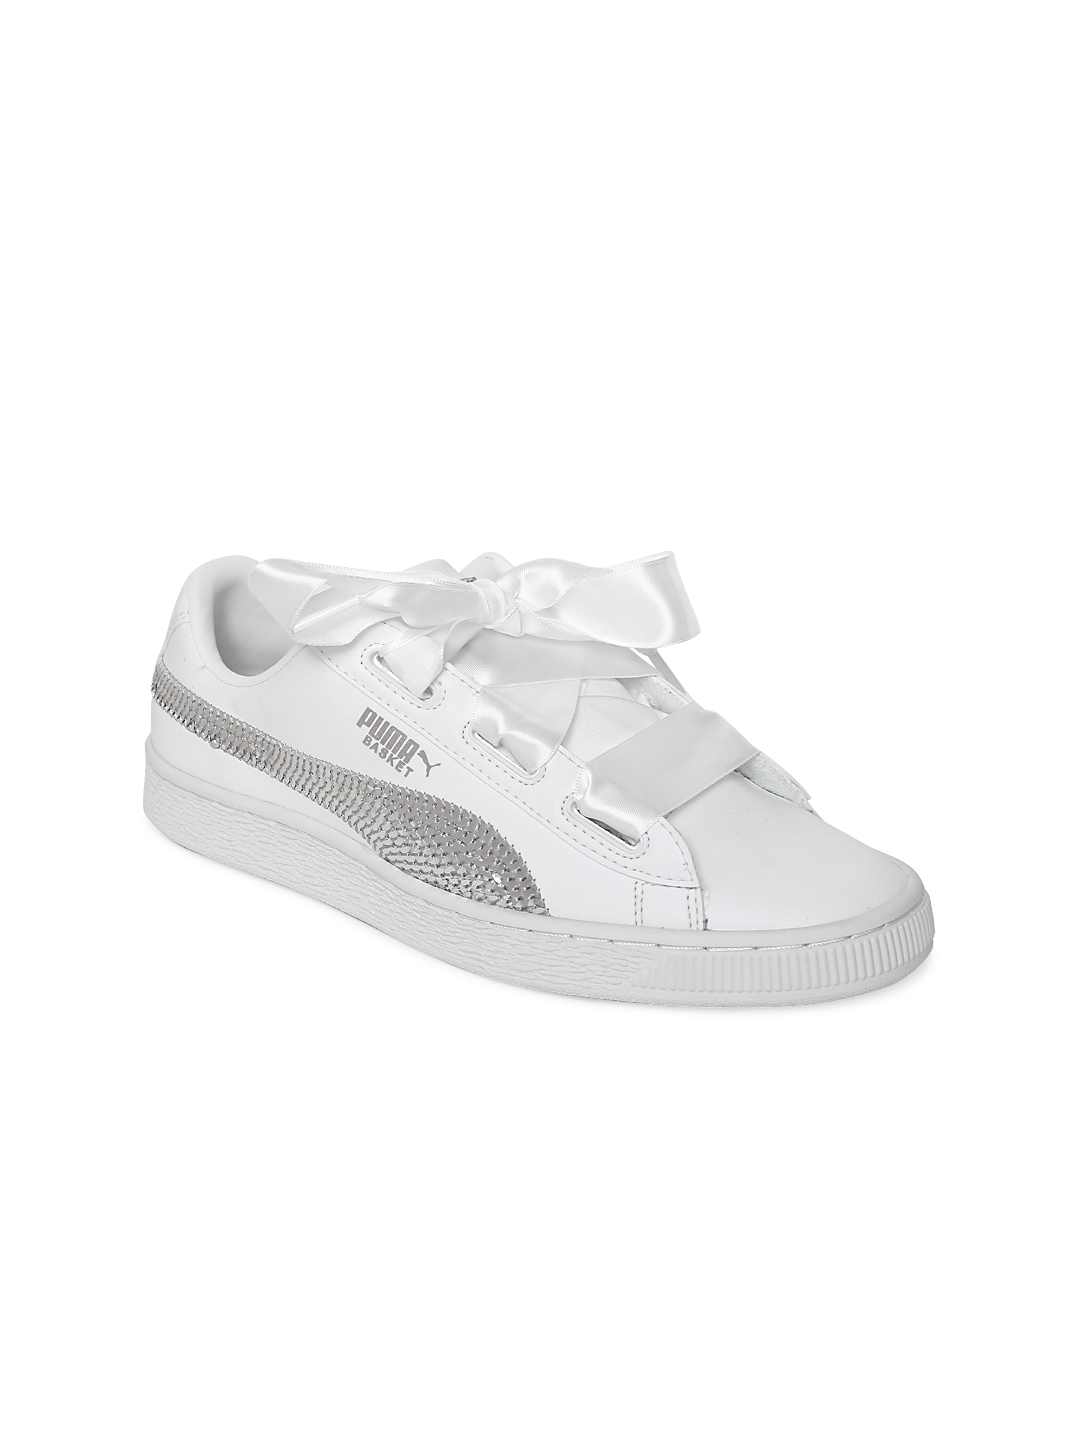 e5d1087a4556 Buy Puma Girls White Basket Heart Bling Casual Shoes - Casual Shoes ...